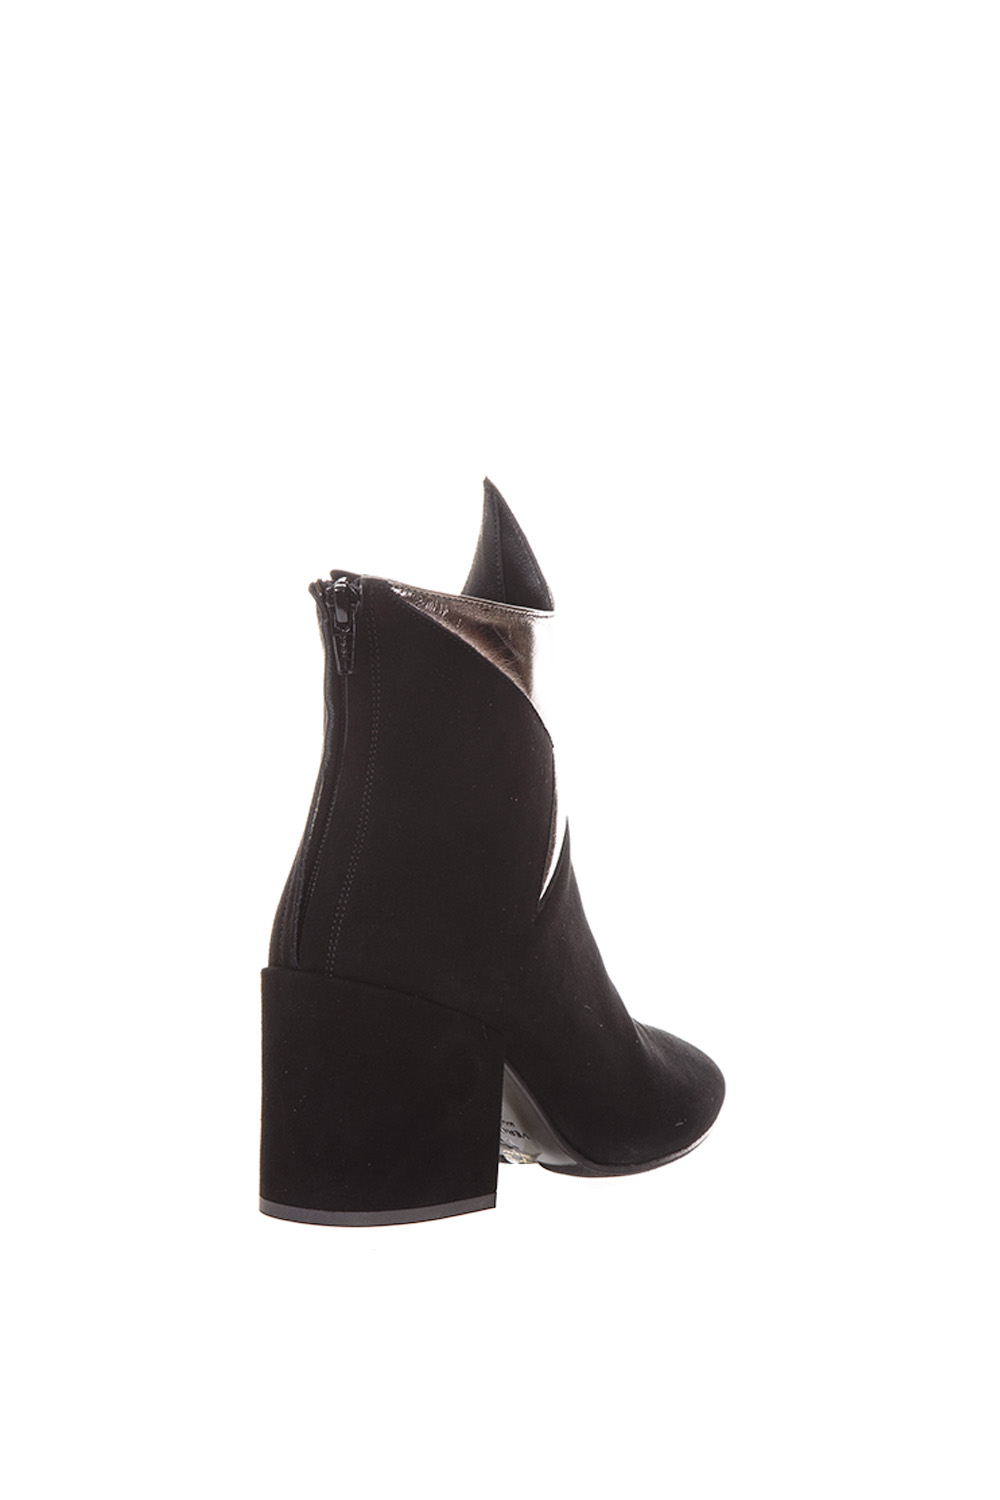 MARC ELLIS Lord Suede Ankle Boots Outlet Best Store To Get Outlet Marketable 2N6as